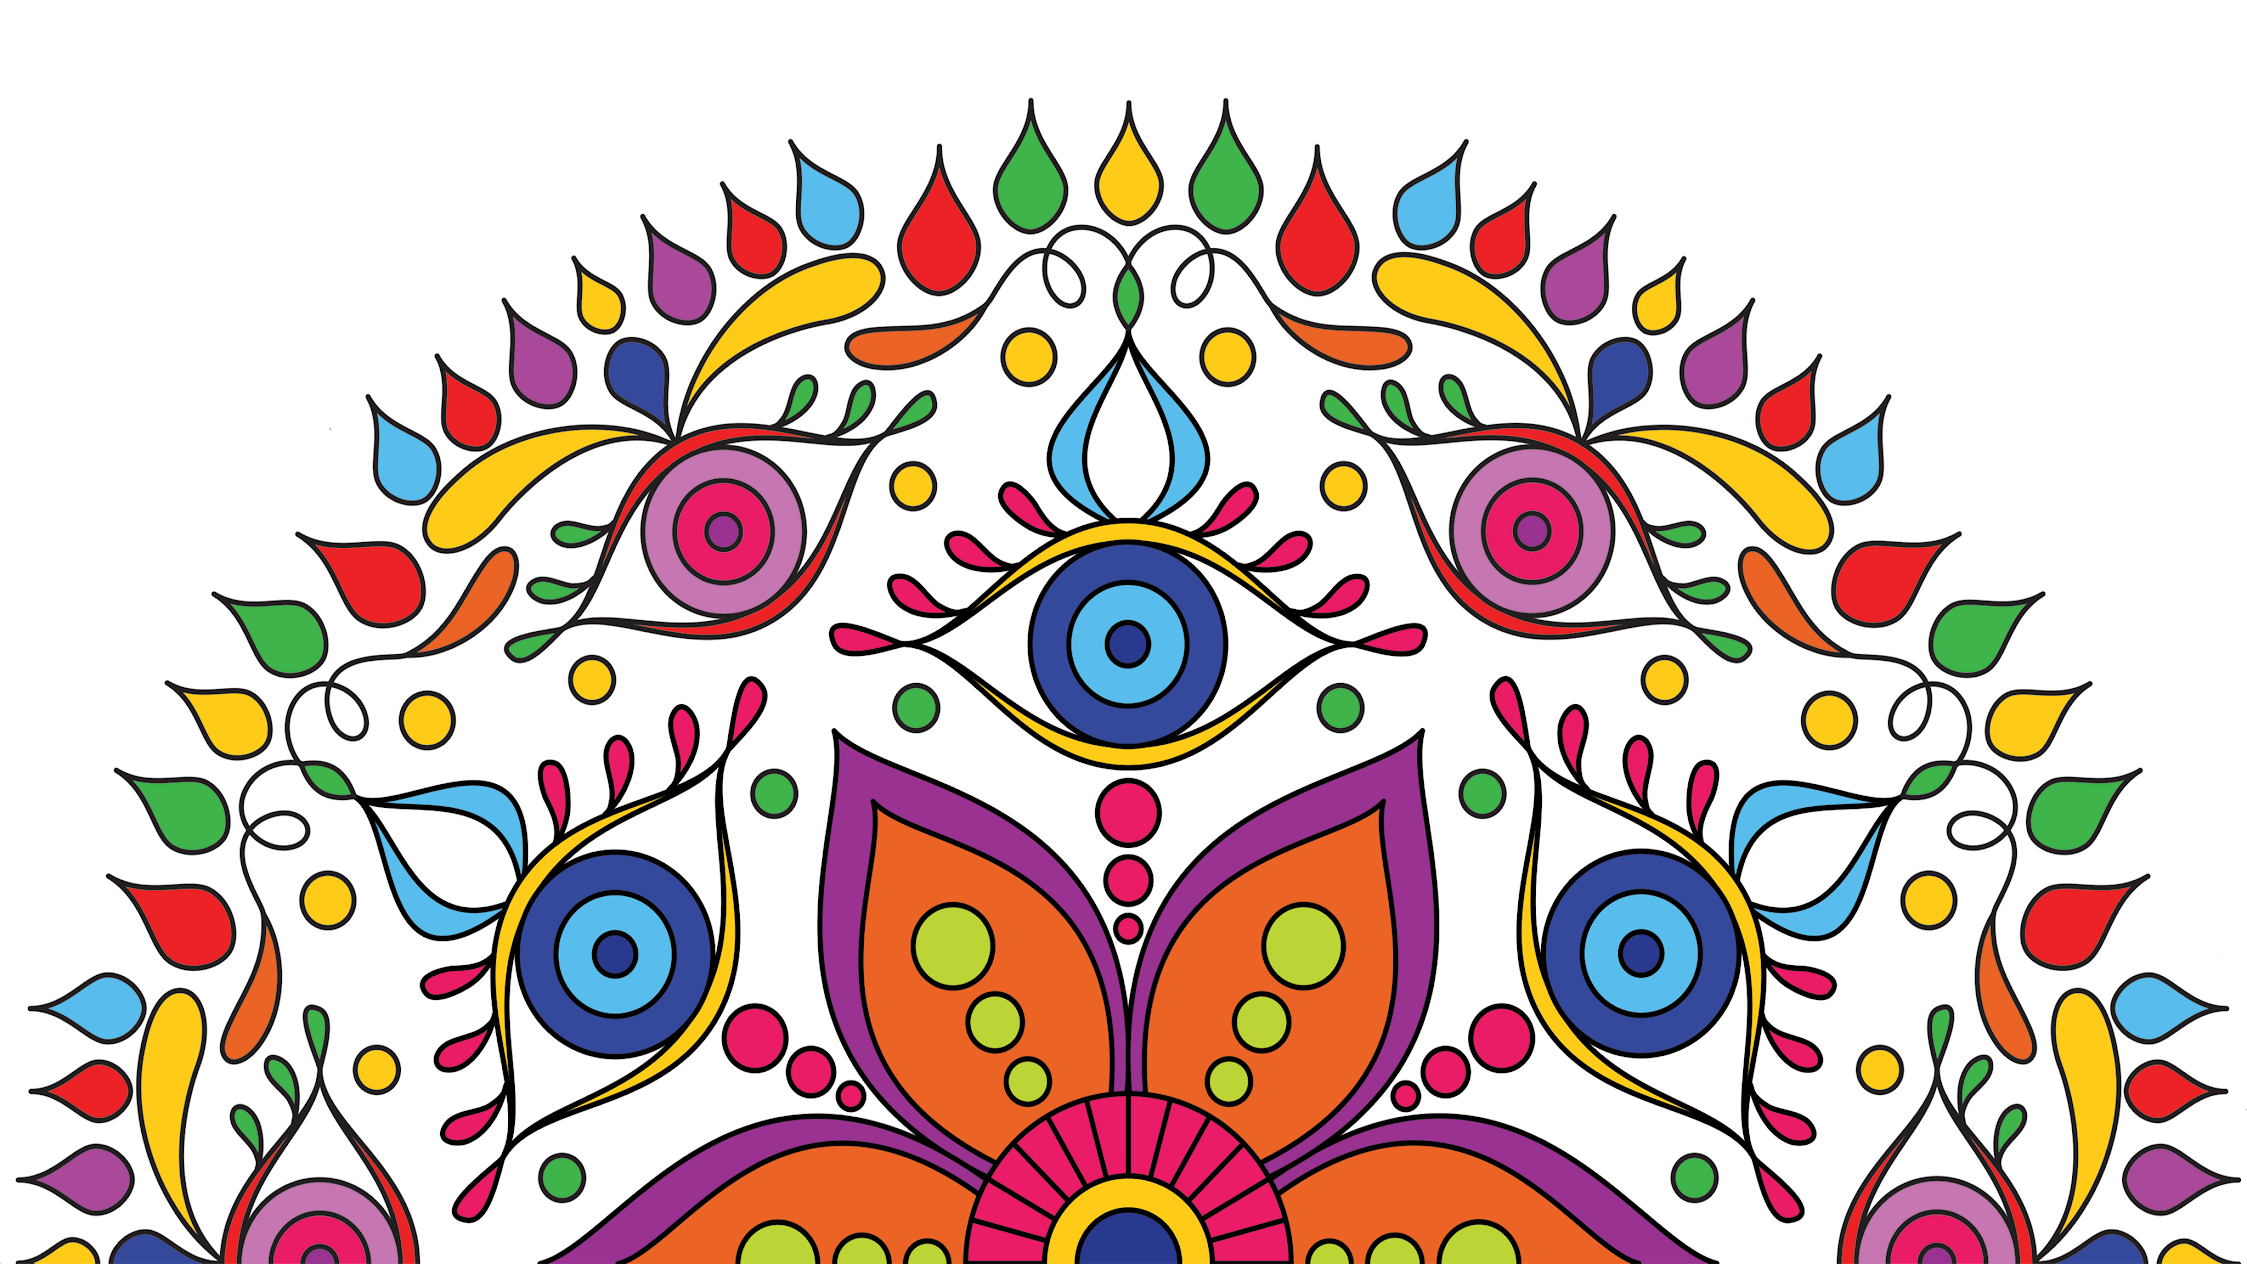 Coloring Games - Apps on Google Play